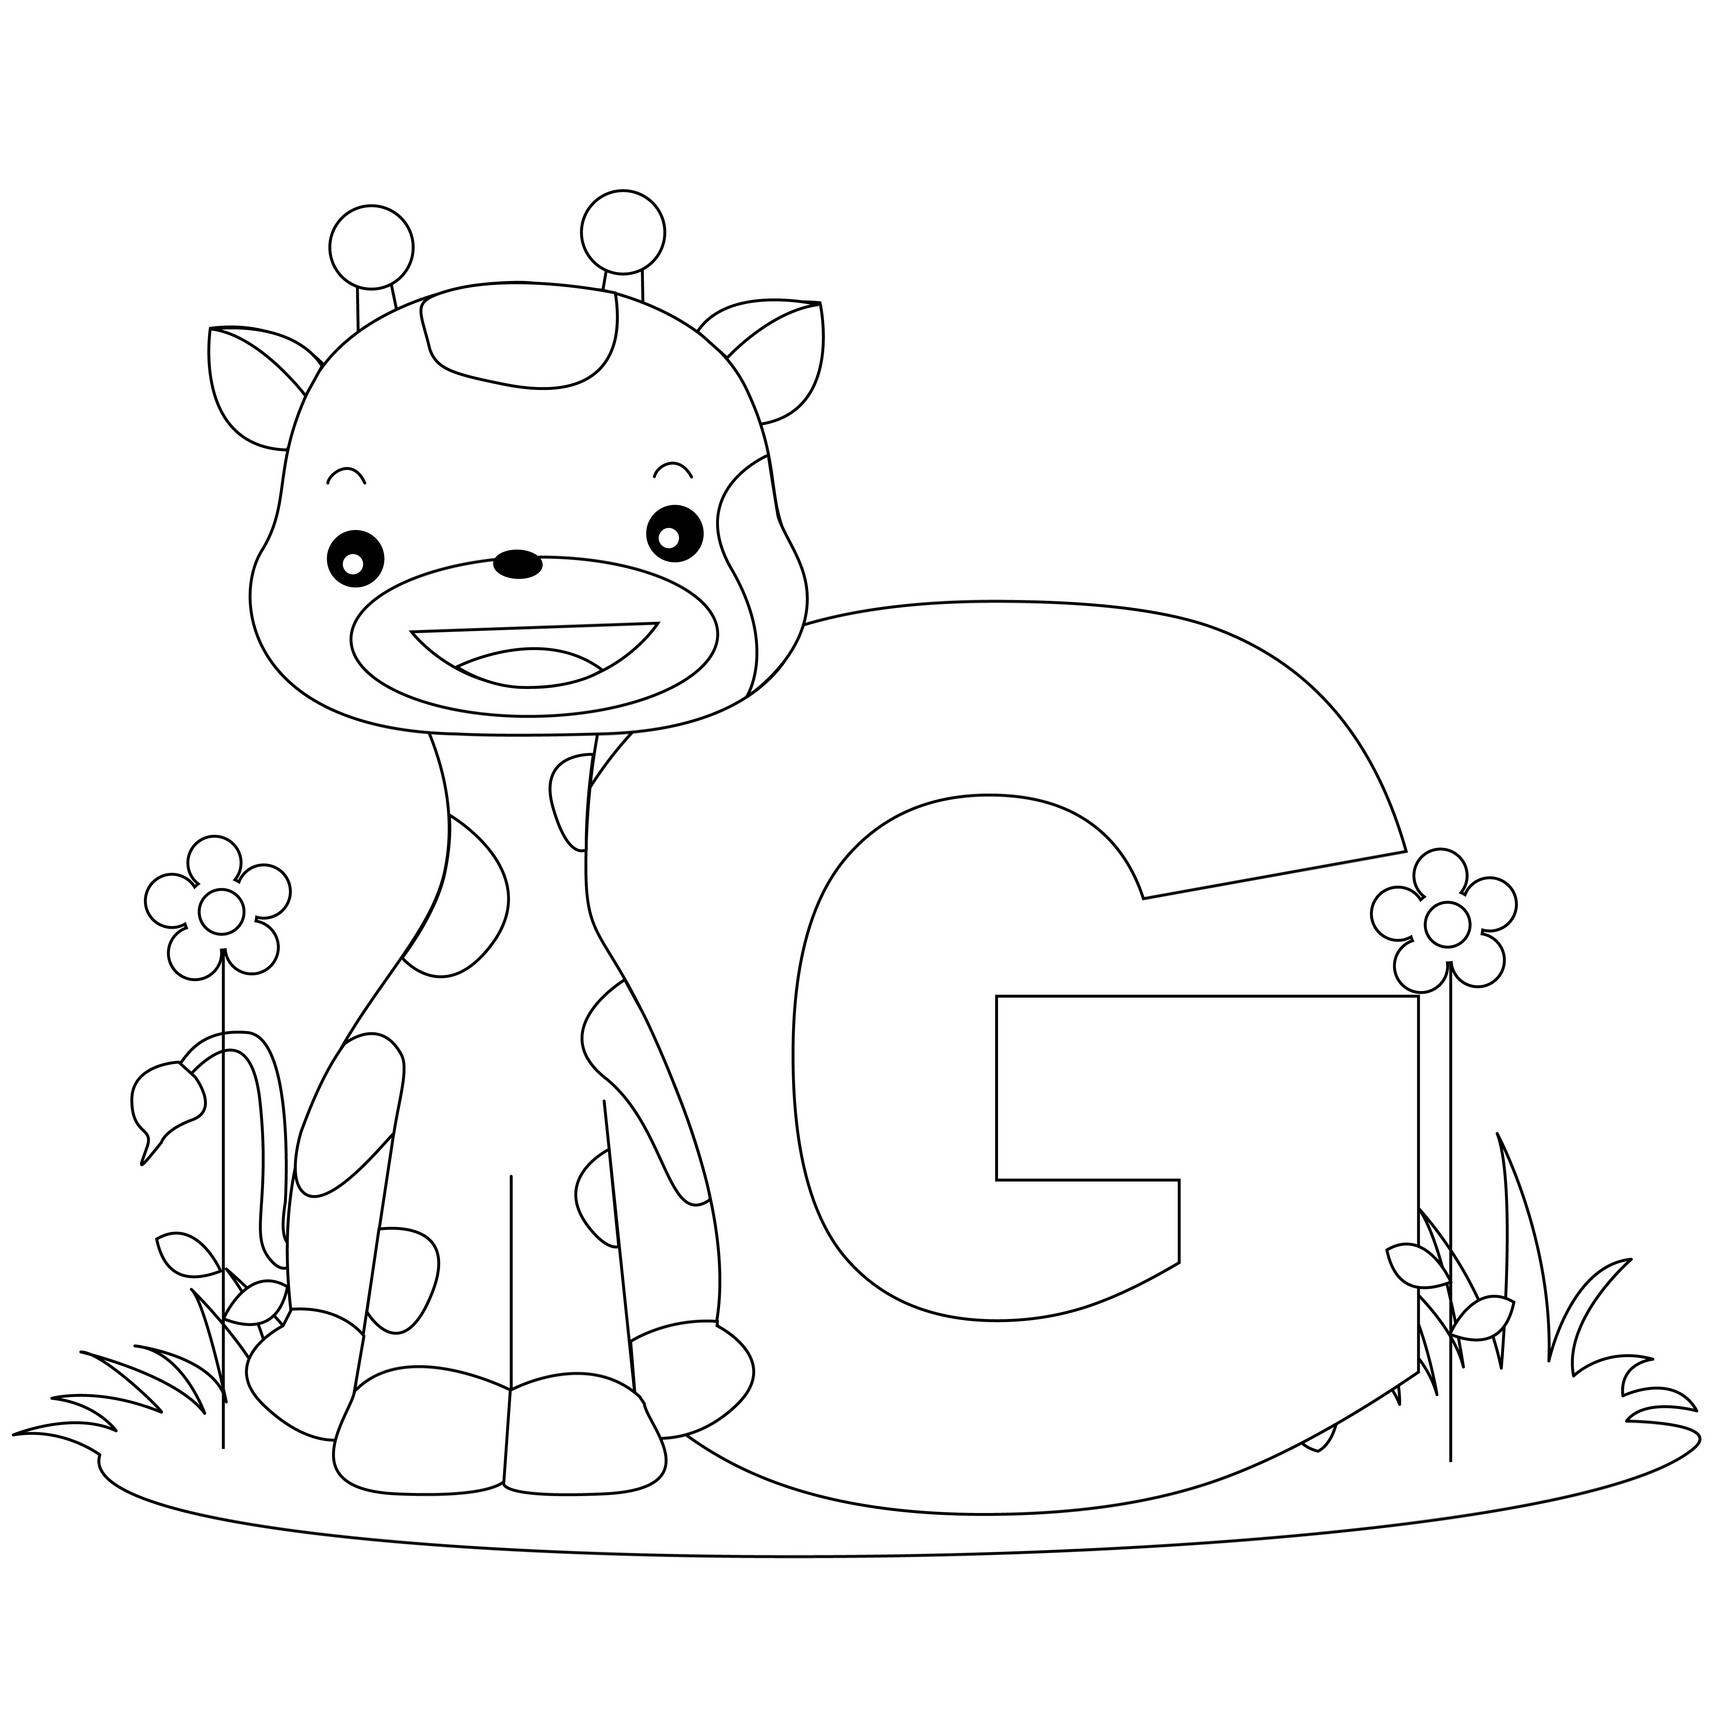 Letter A Coloring Pages For Toddlers  Free Printable Alphabet Coloring Pages for Kids Best